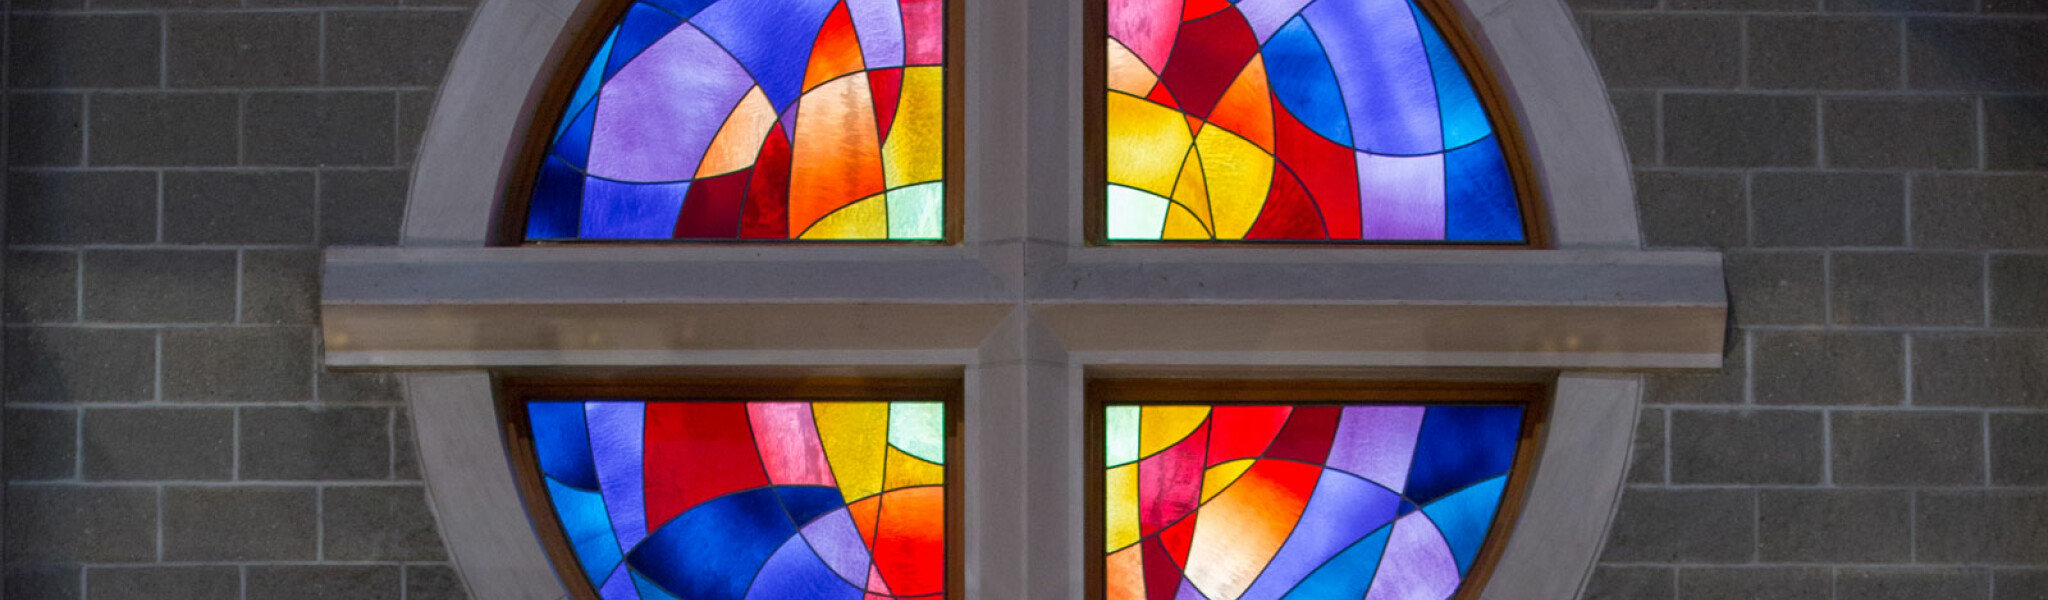 RightNow Media | Cornerstone Lutheran Church | Cornerstone Lutheran Church